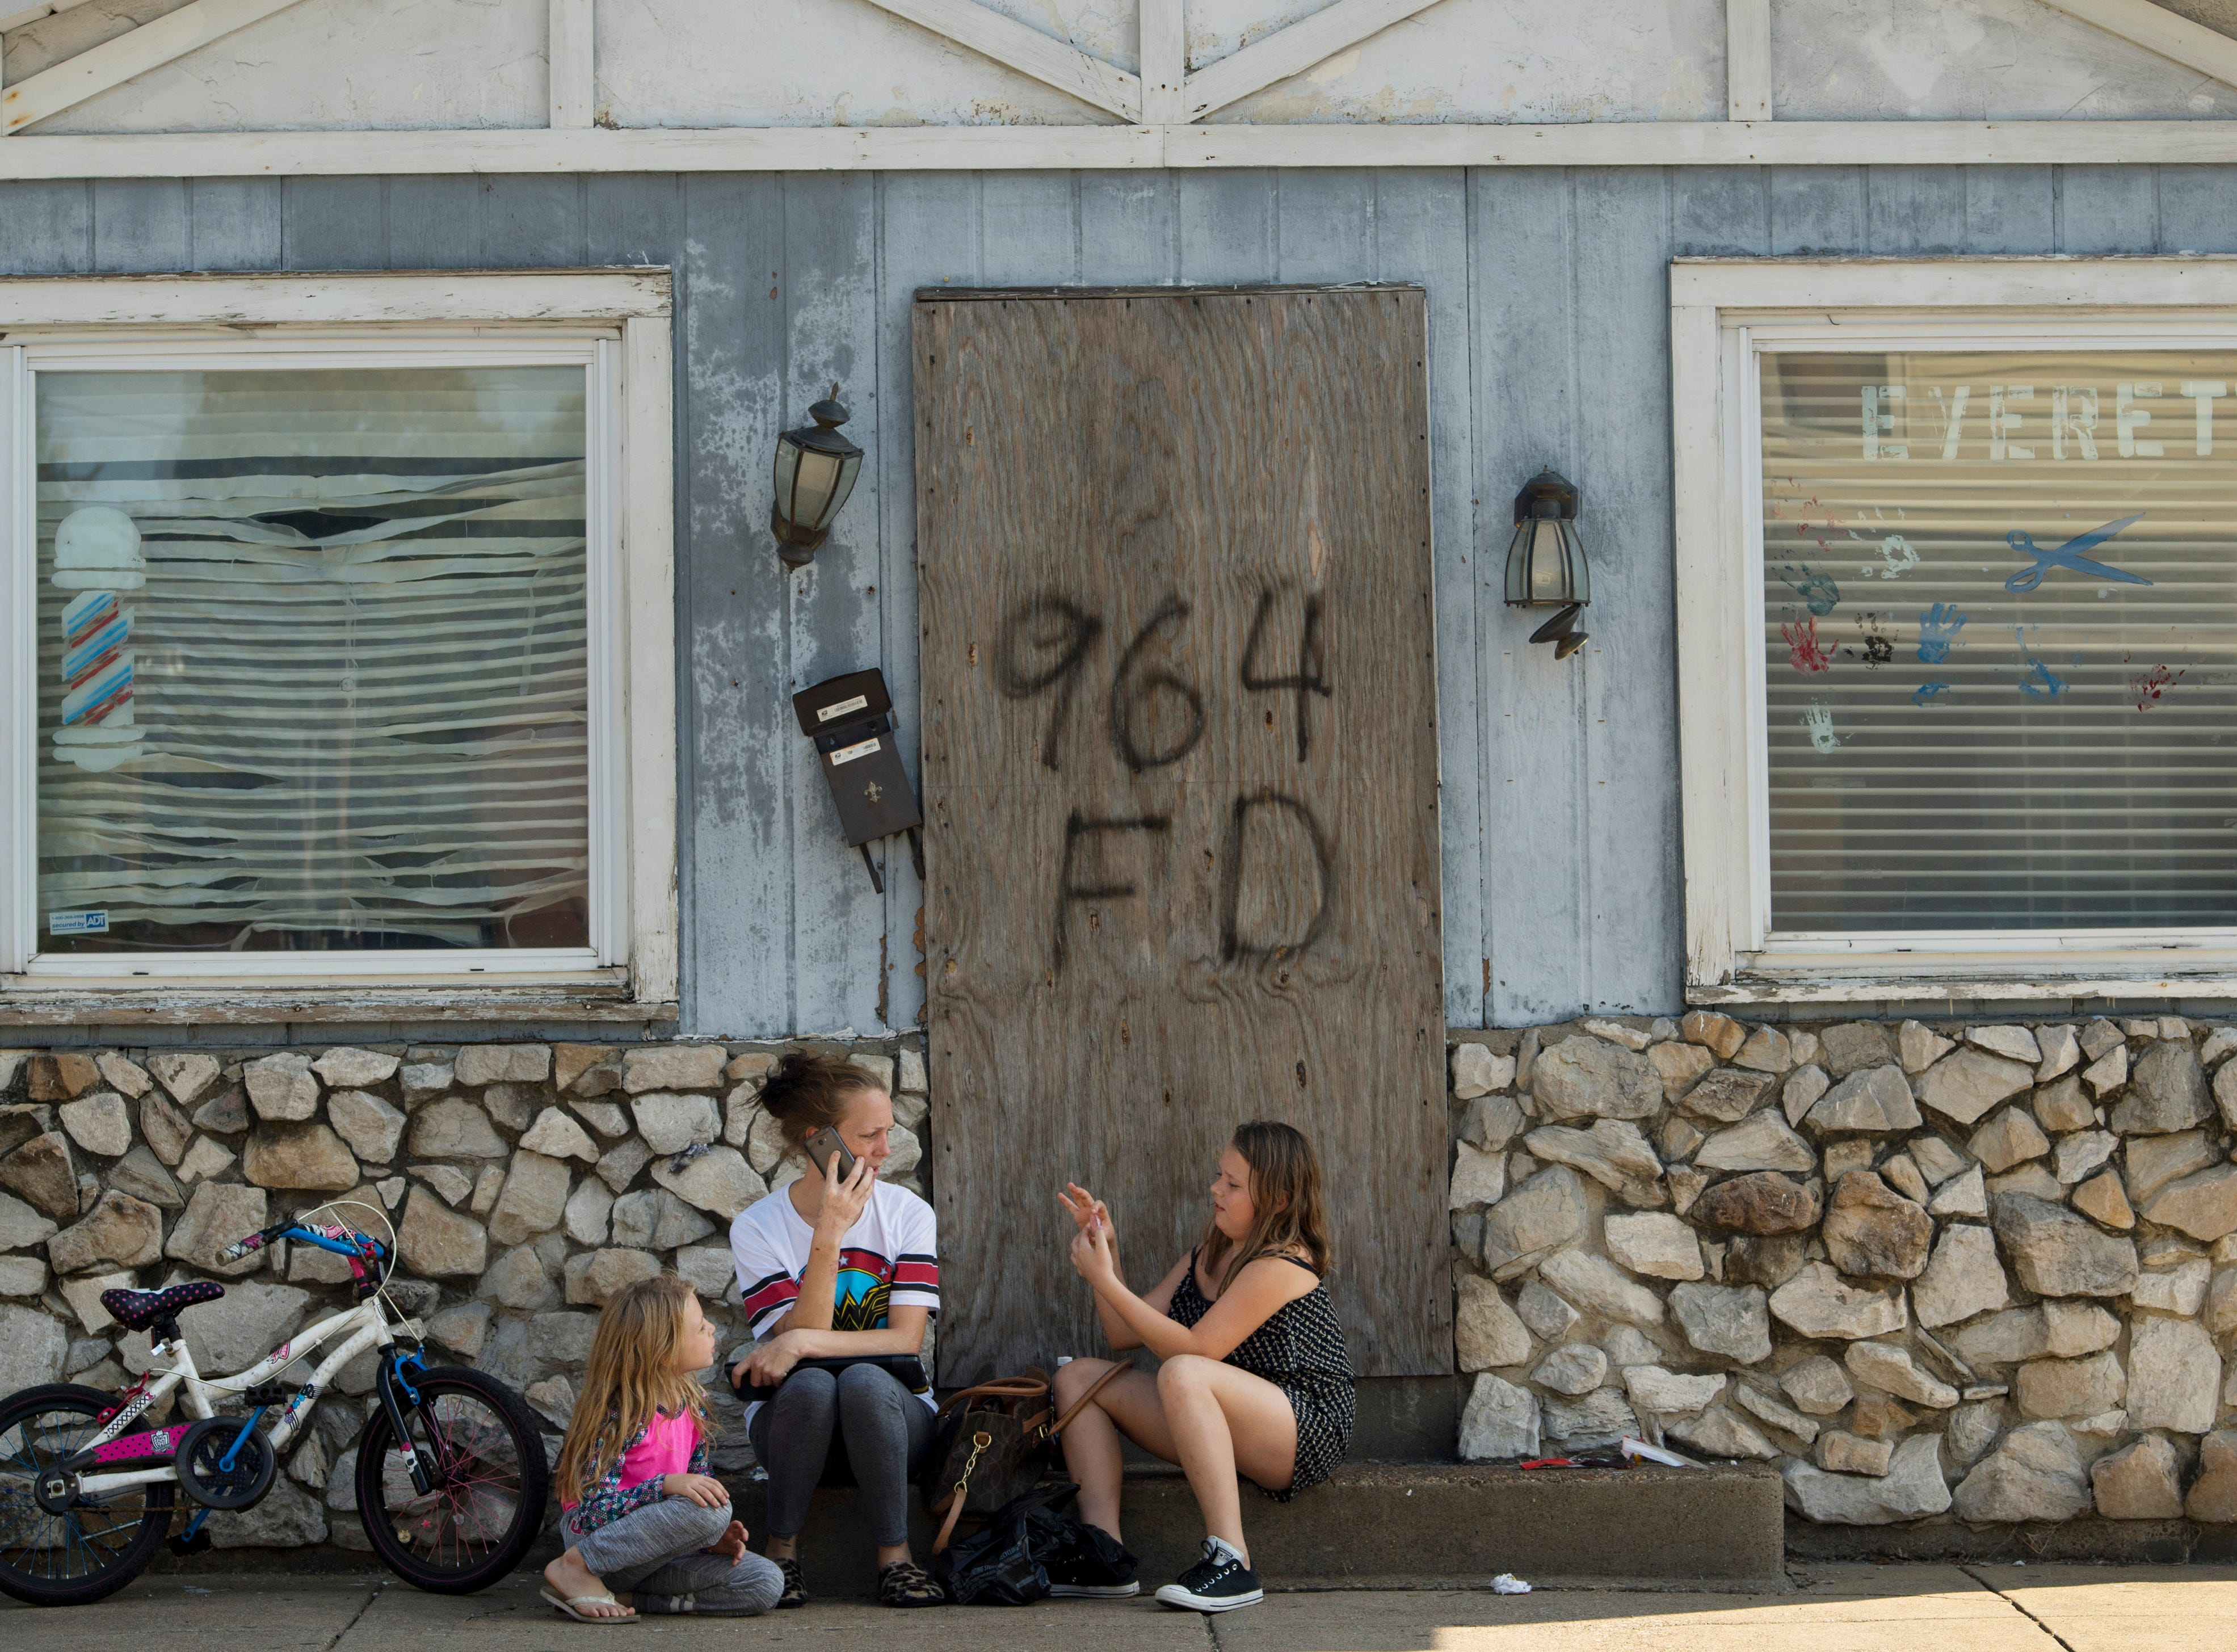 Hayden Effler, 7, left, Bryleigh Effler, 10, right, and their mom, Jessica Reeves, take a break from their walk in front of the old Everett Barber Shop in Evansville Monday morning. The kids are taking advantage of their spring break and won't have to go back to school until Thursday.